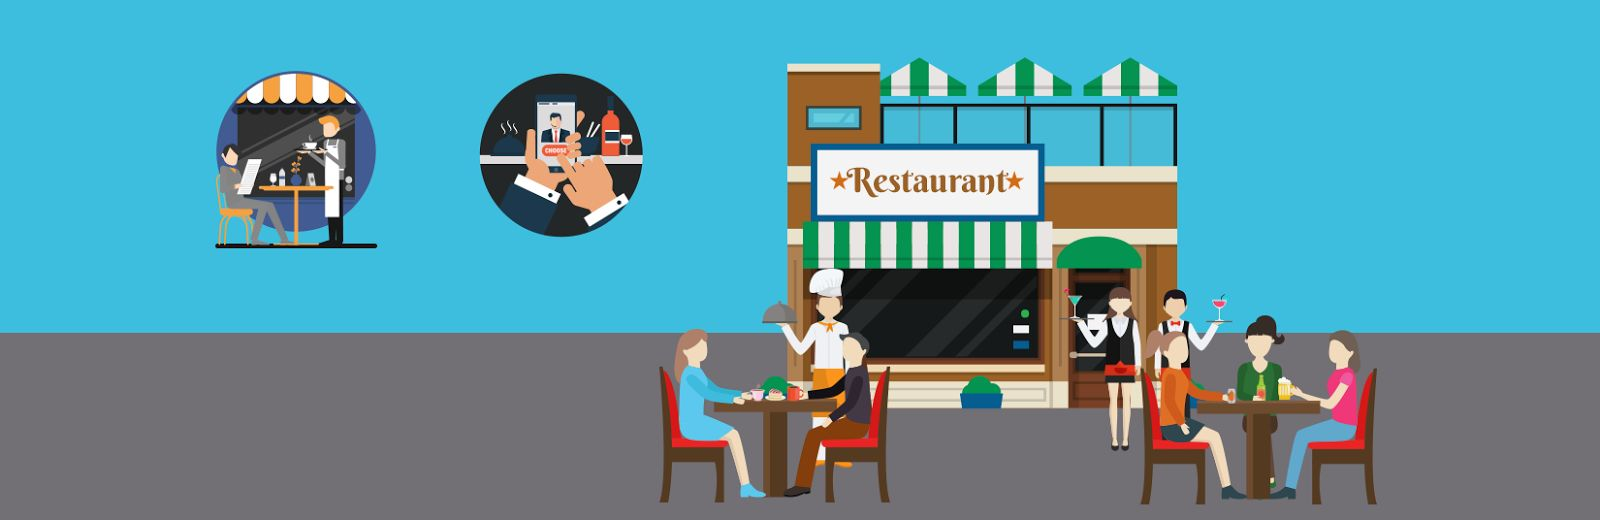 IoT solutions and Restaurant apps